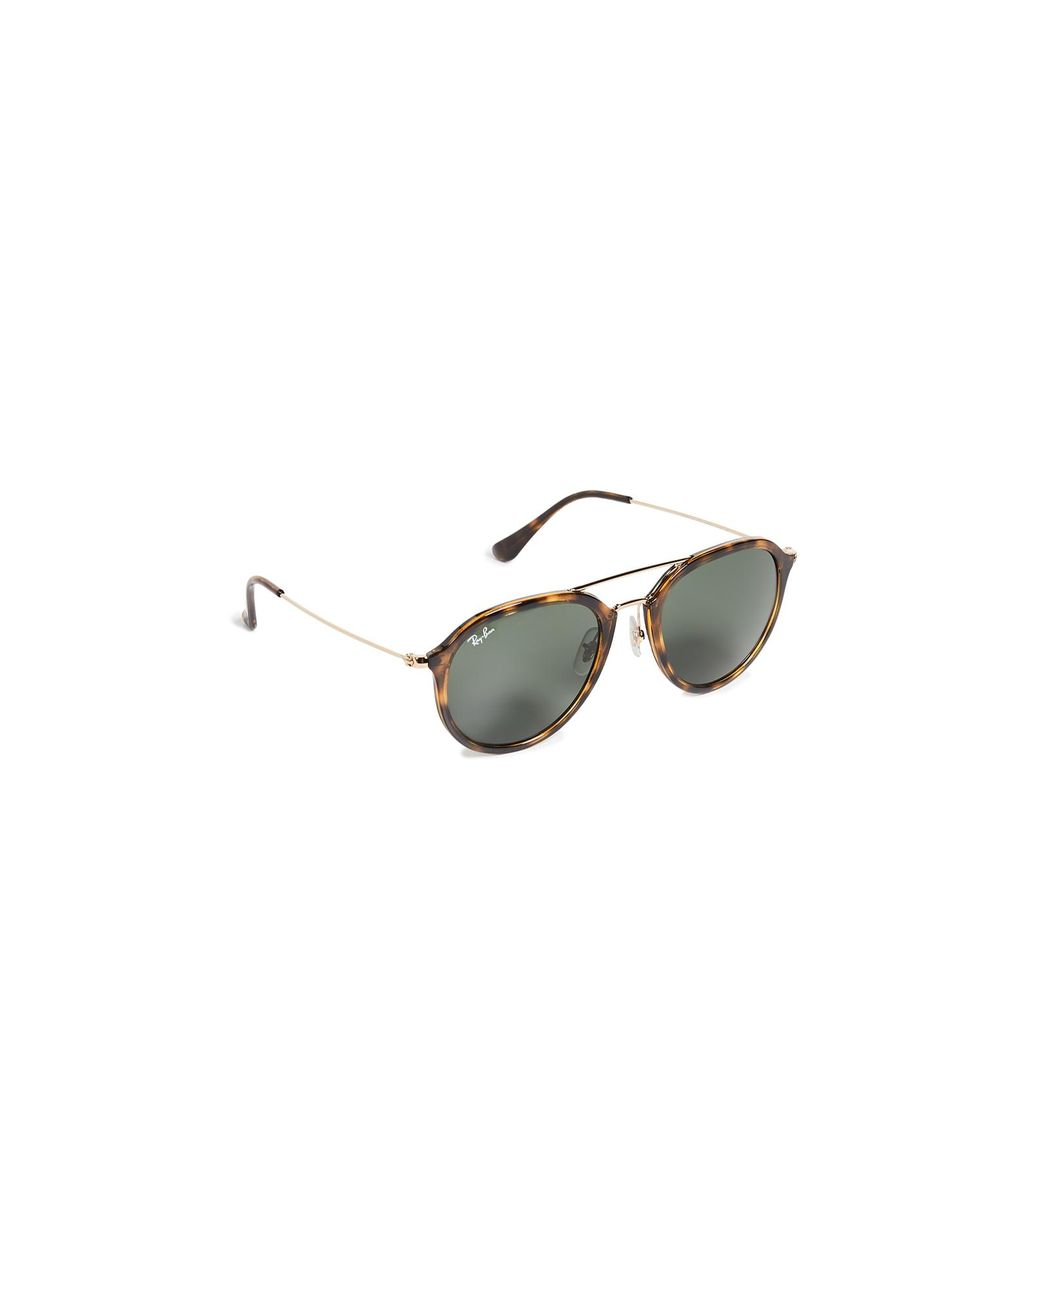 NWT TOMMY HILFIGER Fionna Womens Sunglasses Brown//Brown